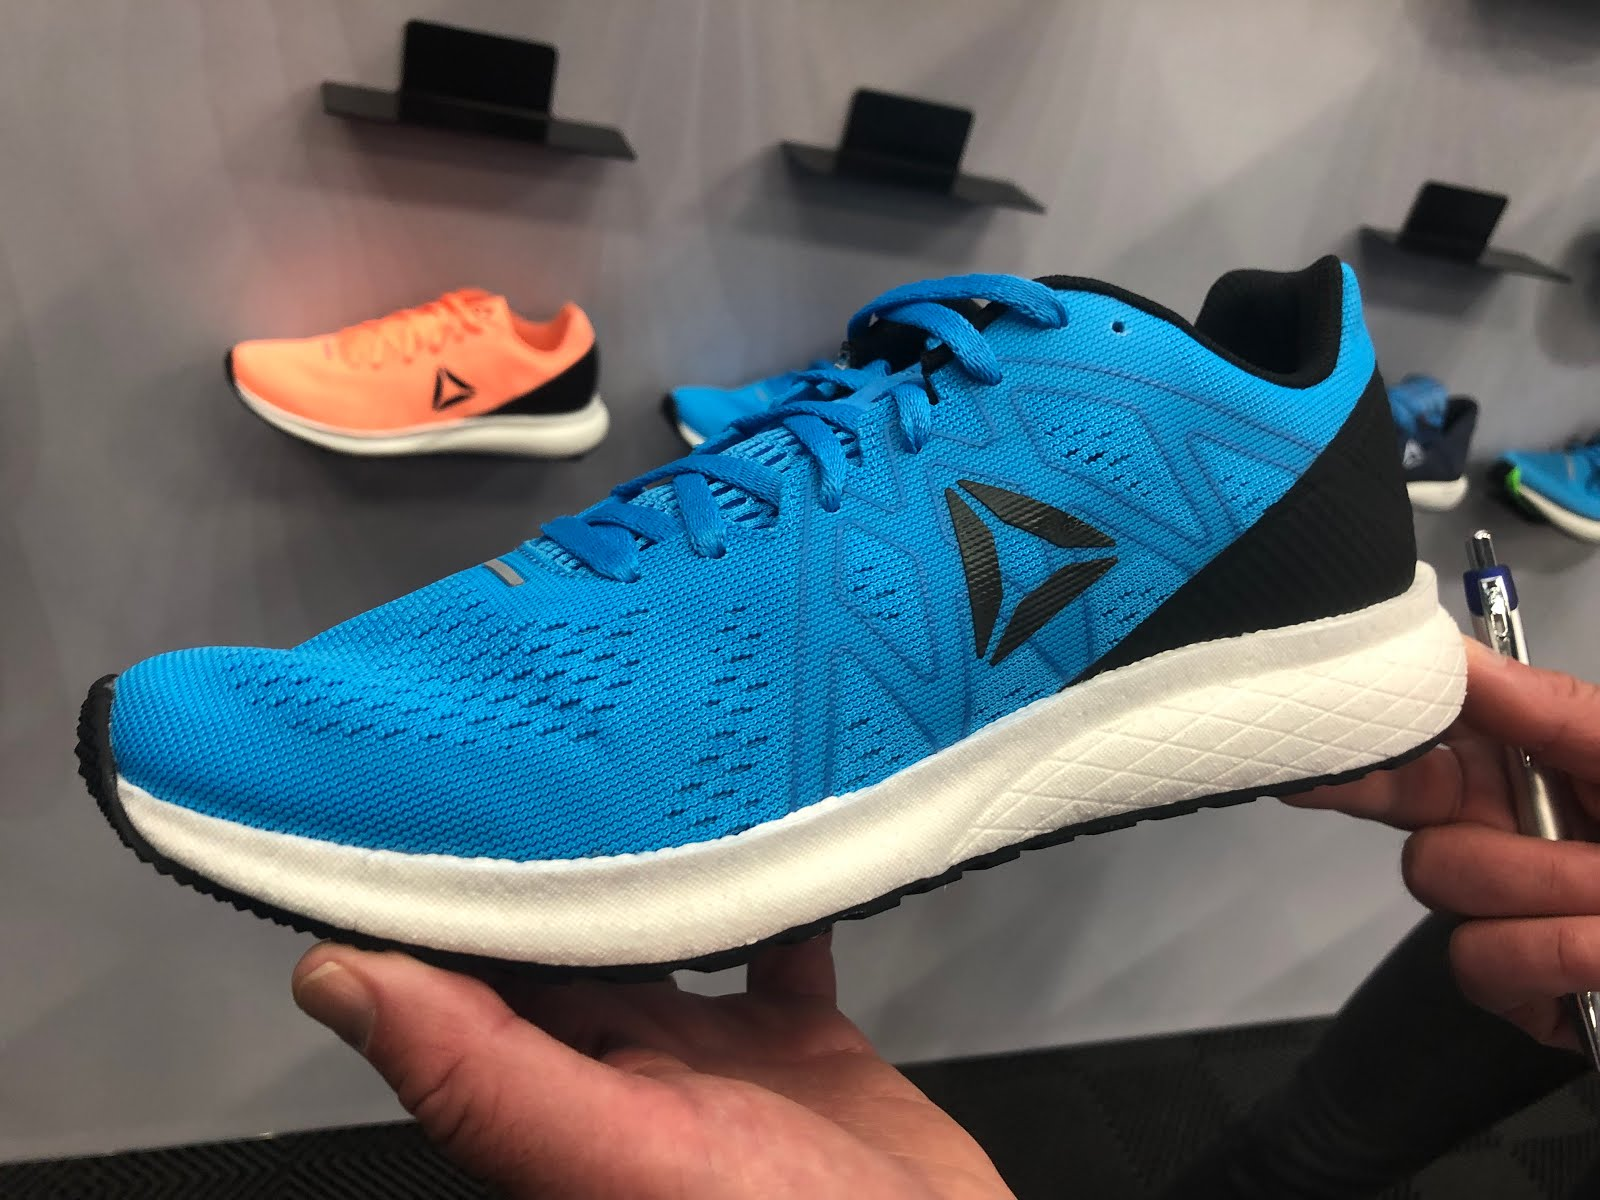 5c232e6fdee The new Energy joins the class of simple lower weight running shoes with  few frills which promise a lively ride and versatility.